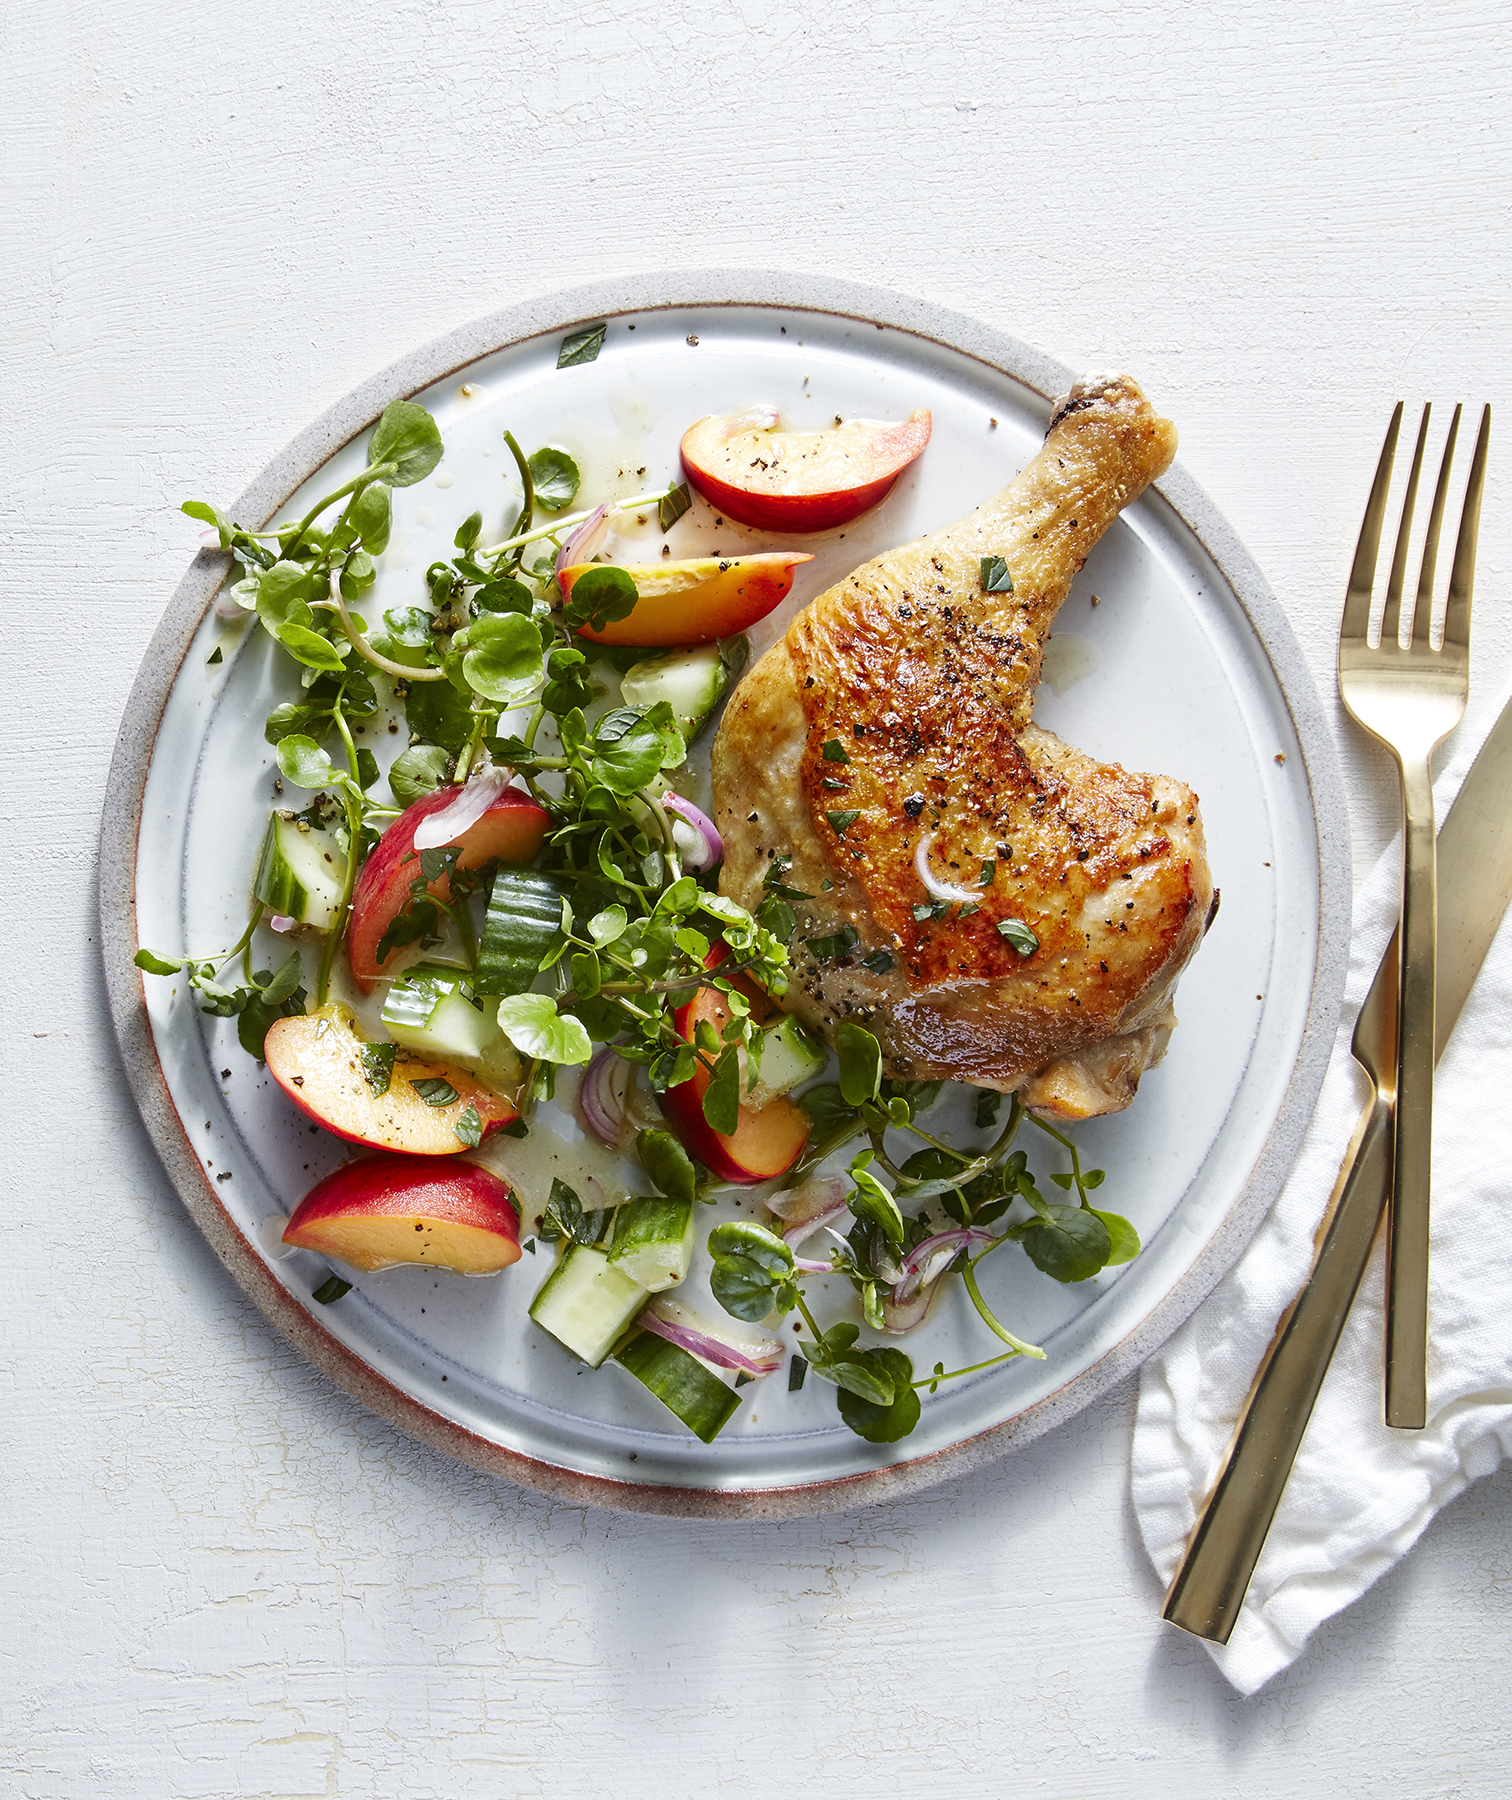 Chicken Legs With Peach, Shallot, and Watercress Salad